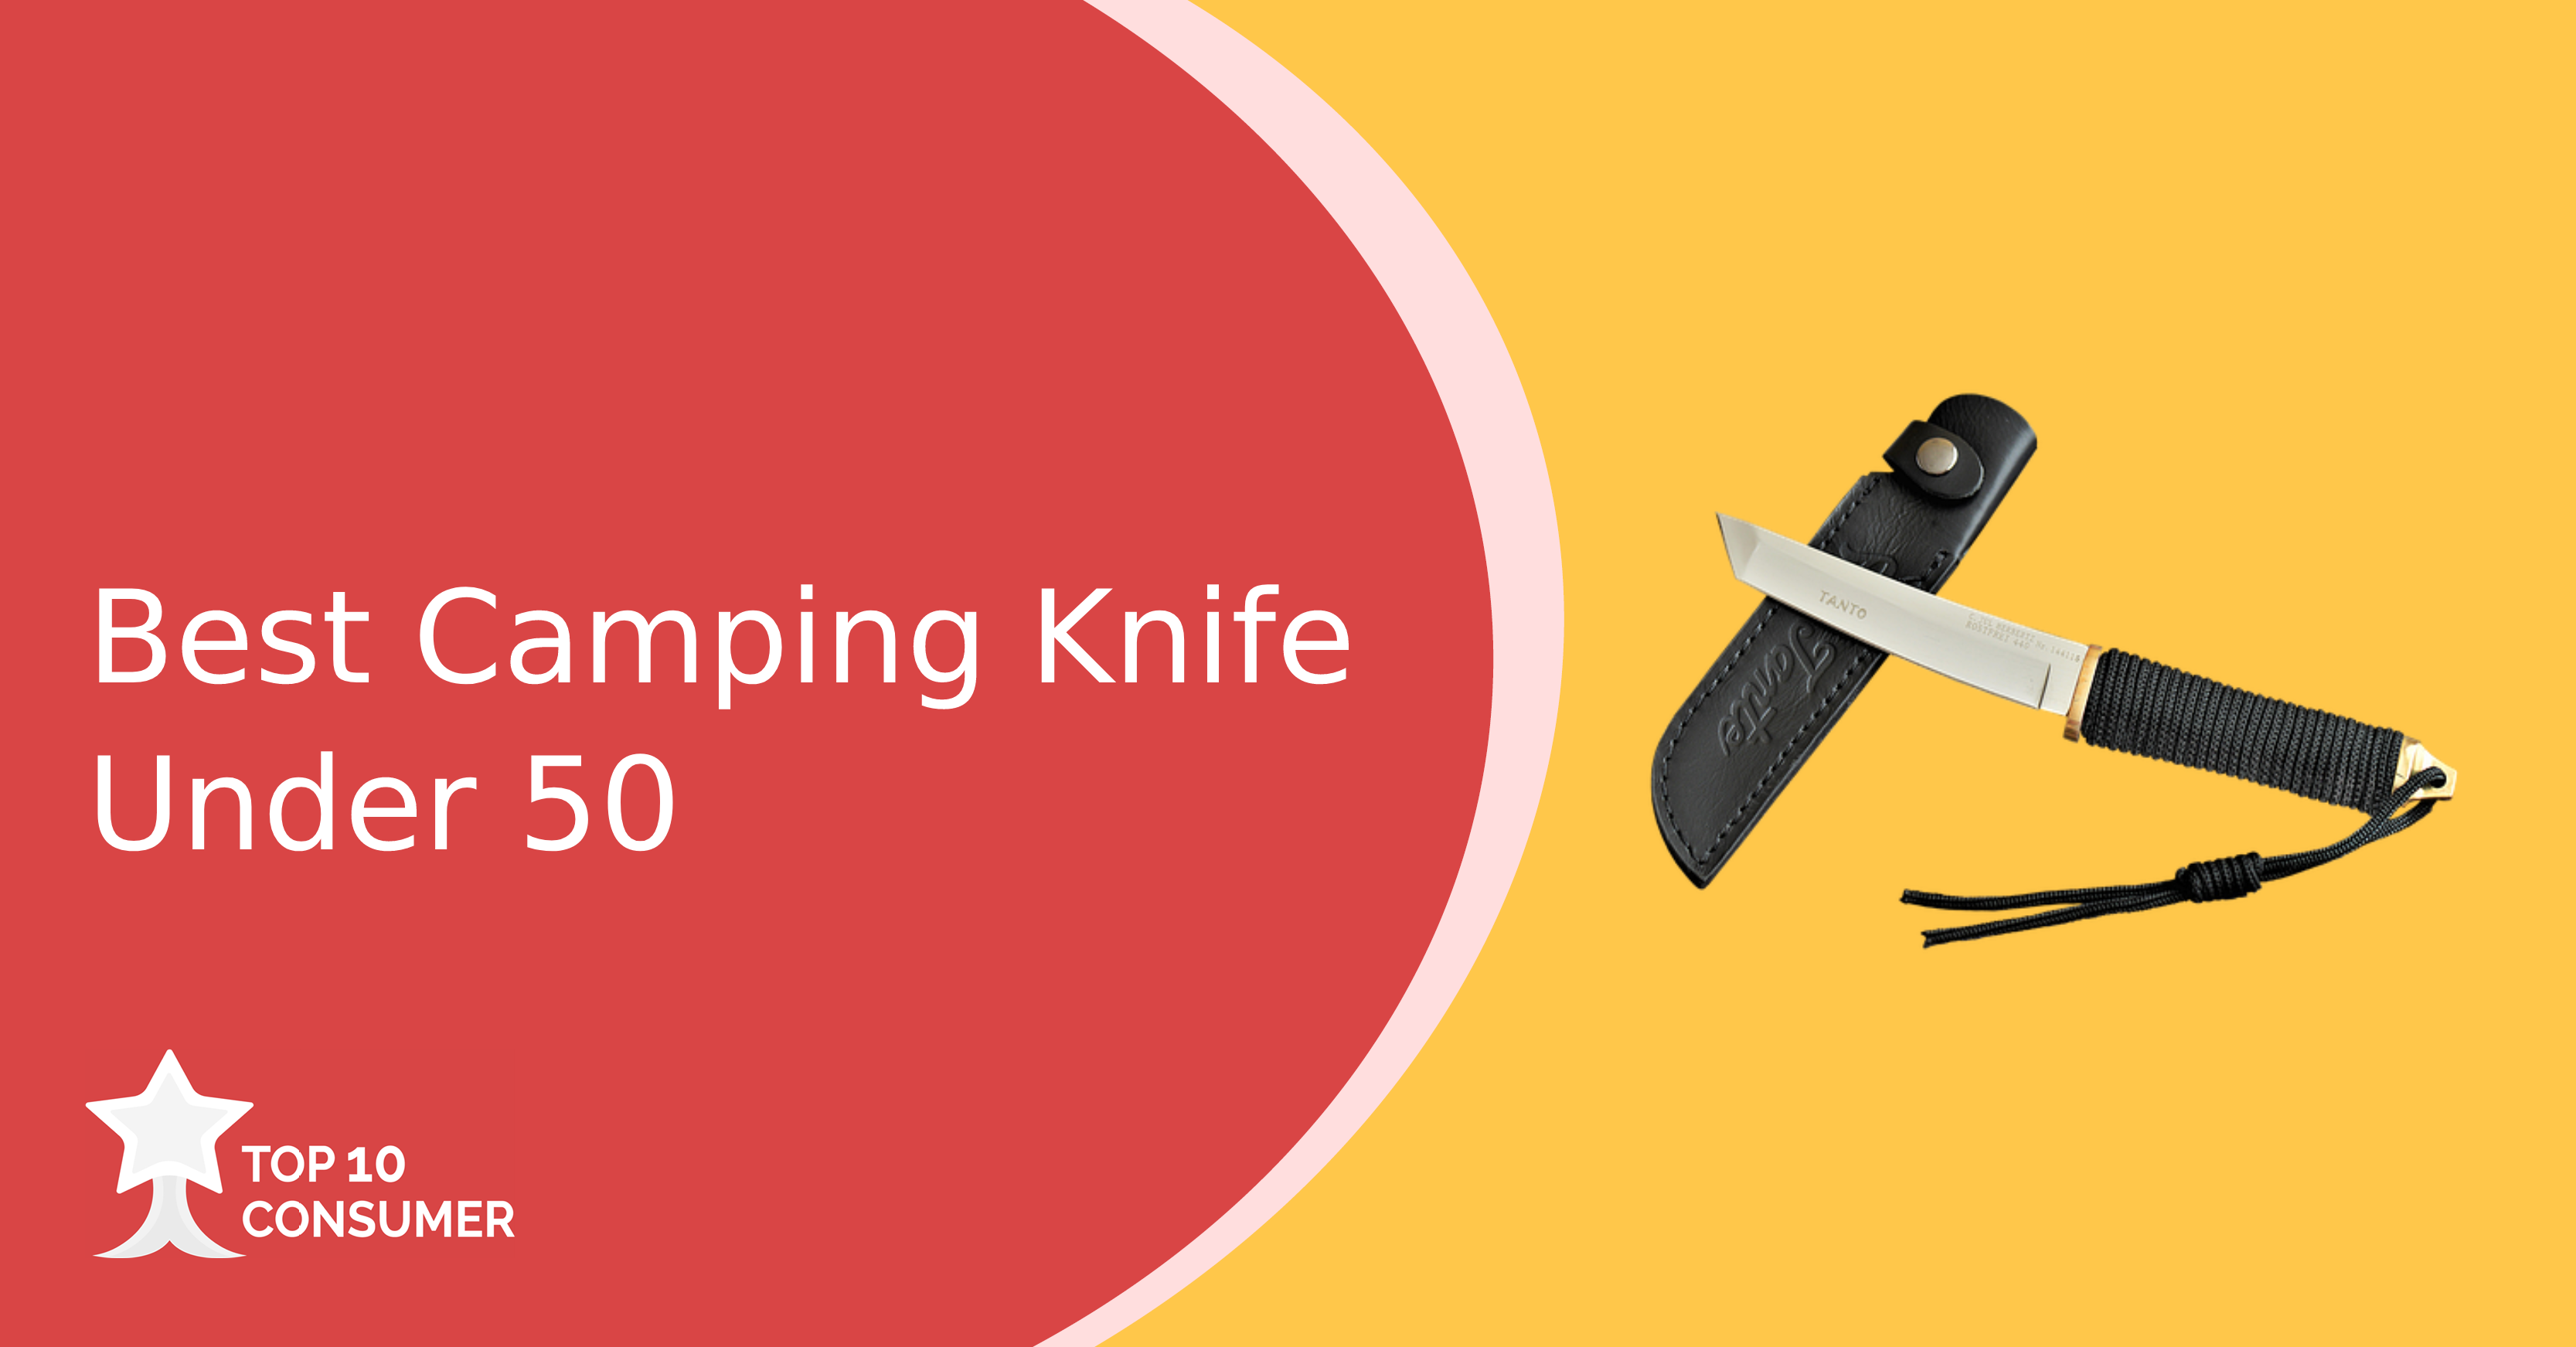 Best camping knife under 50